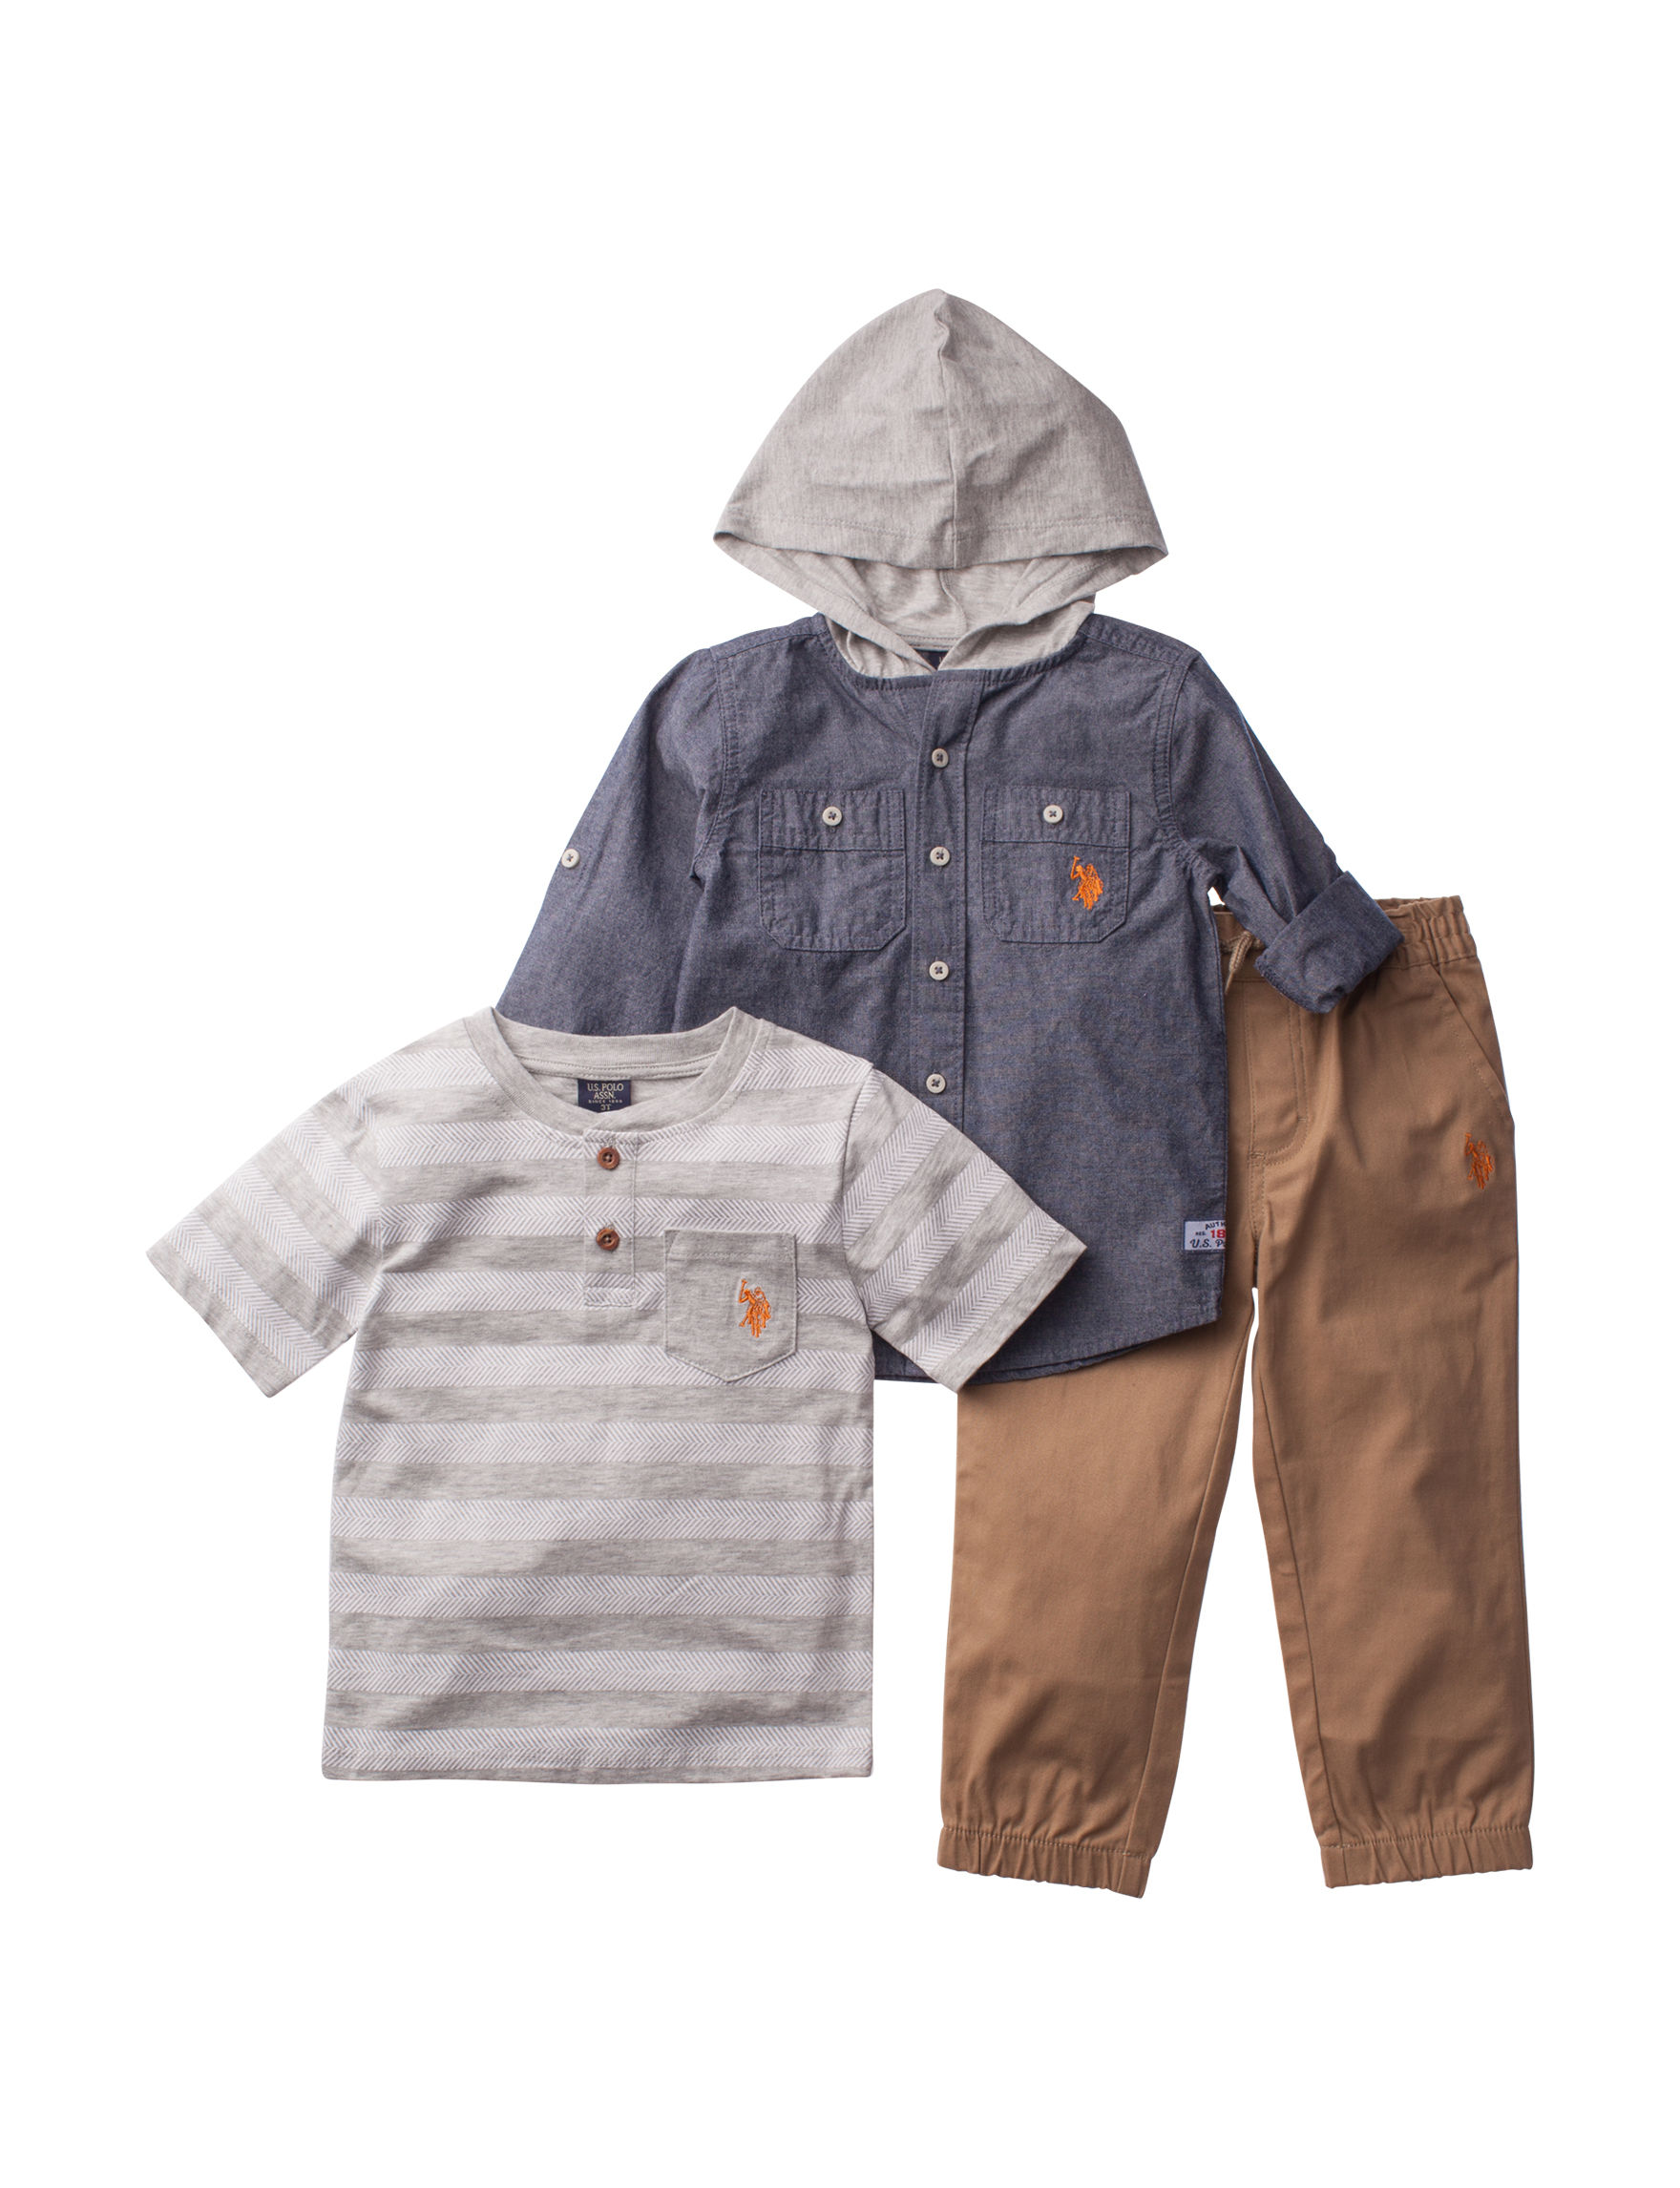 U.S. Polo Assn. Grey Multi Tees & Tanks